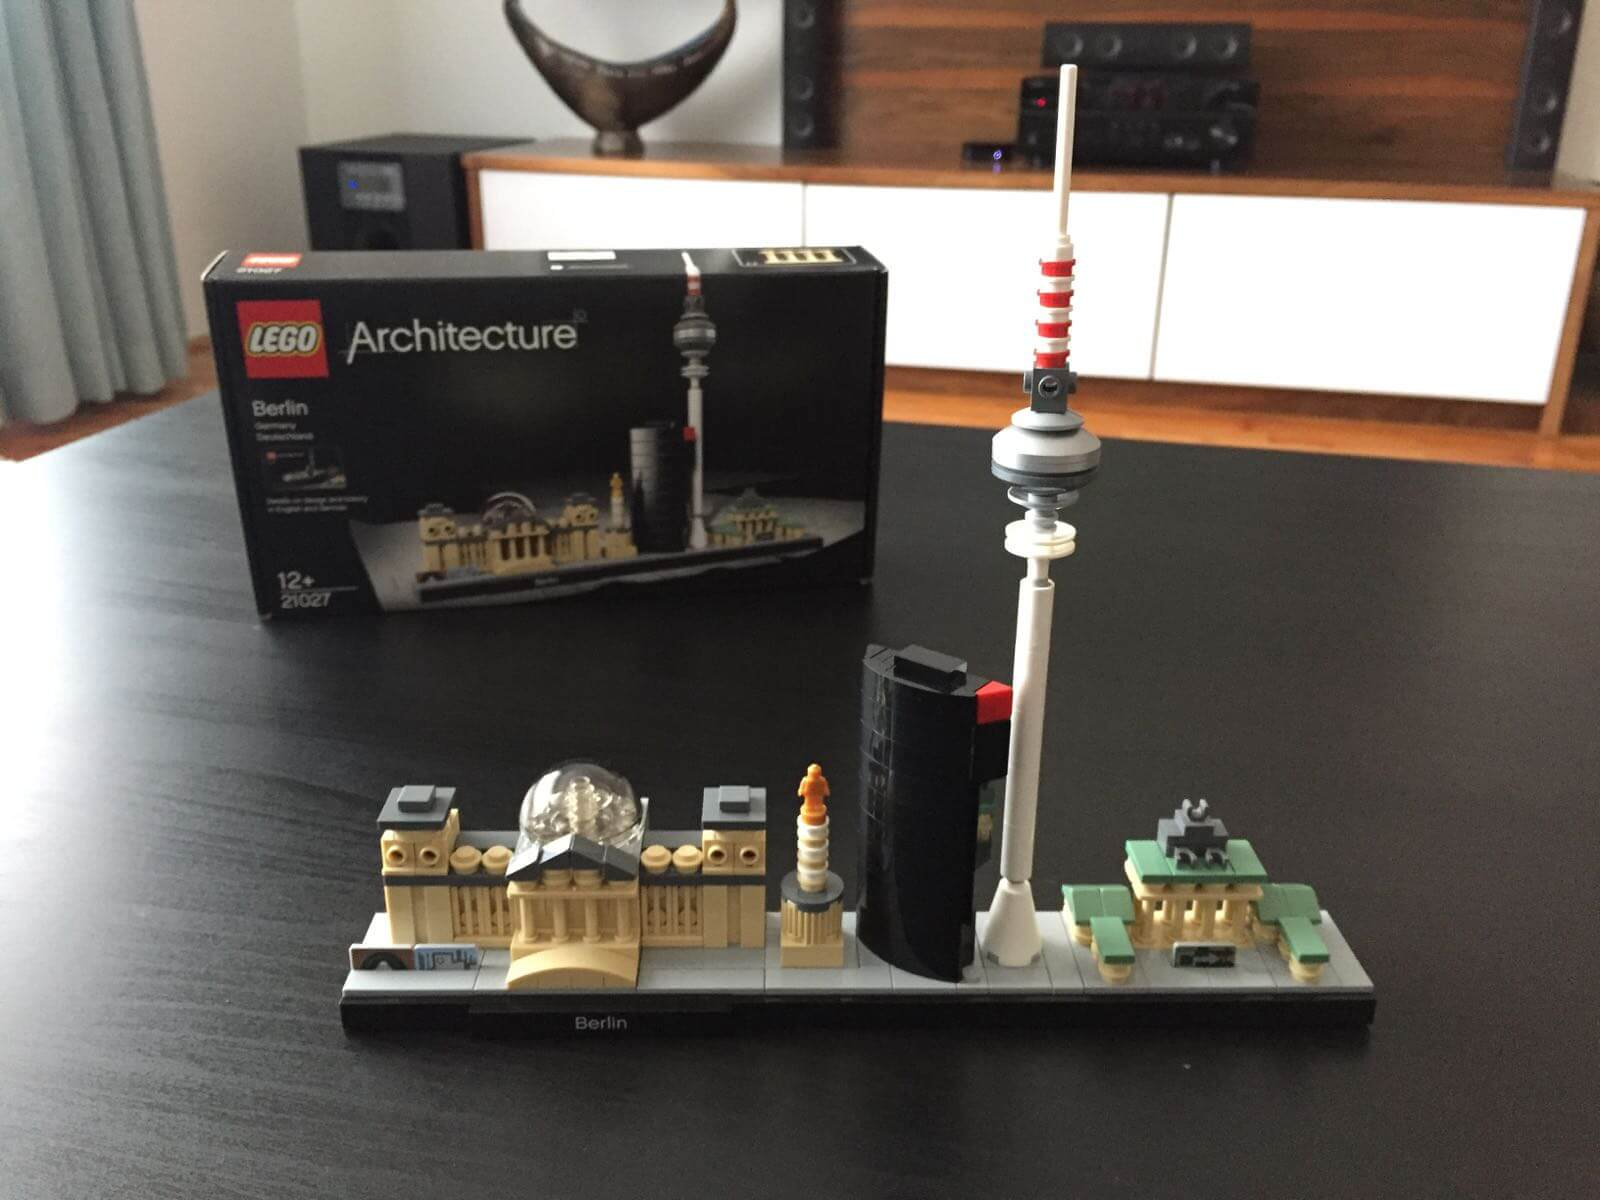 LEGO Architecture - Berlin: Built